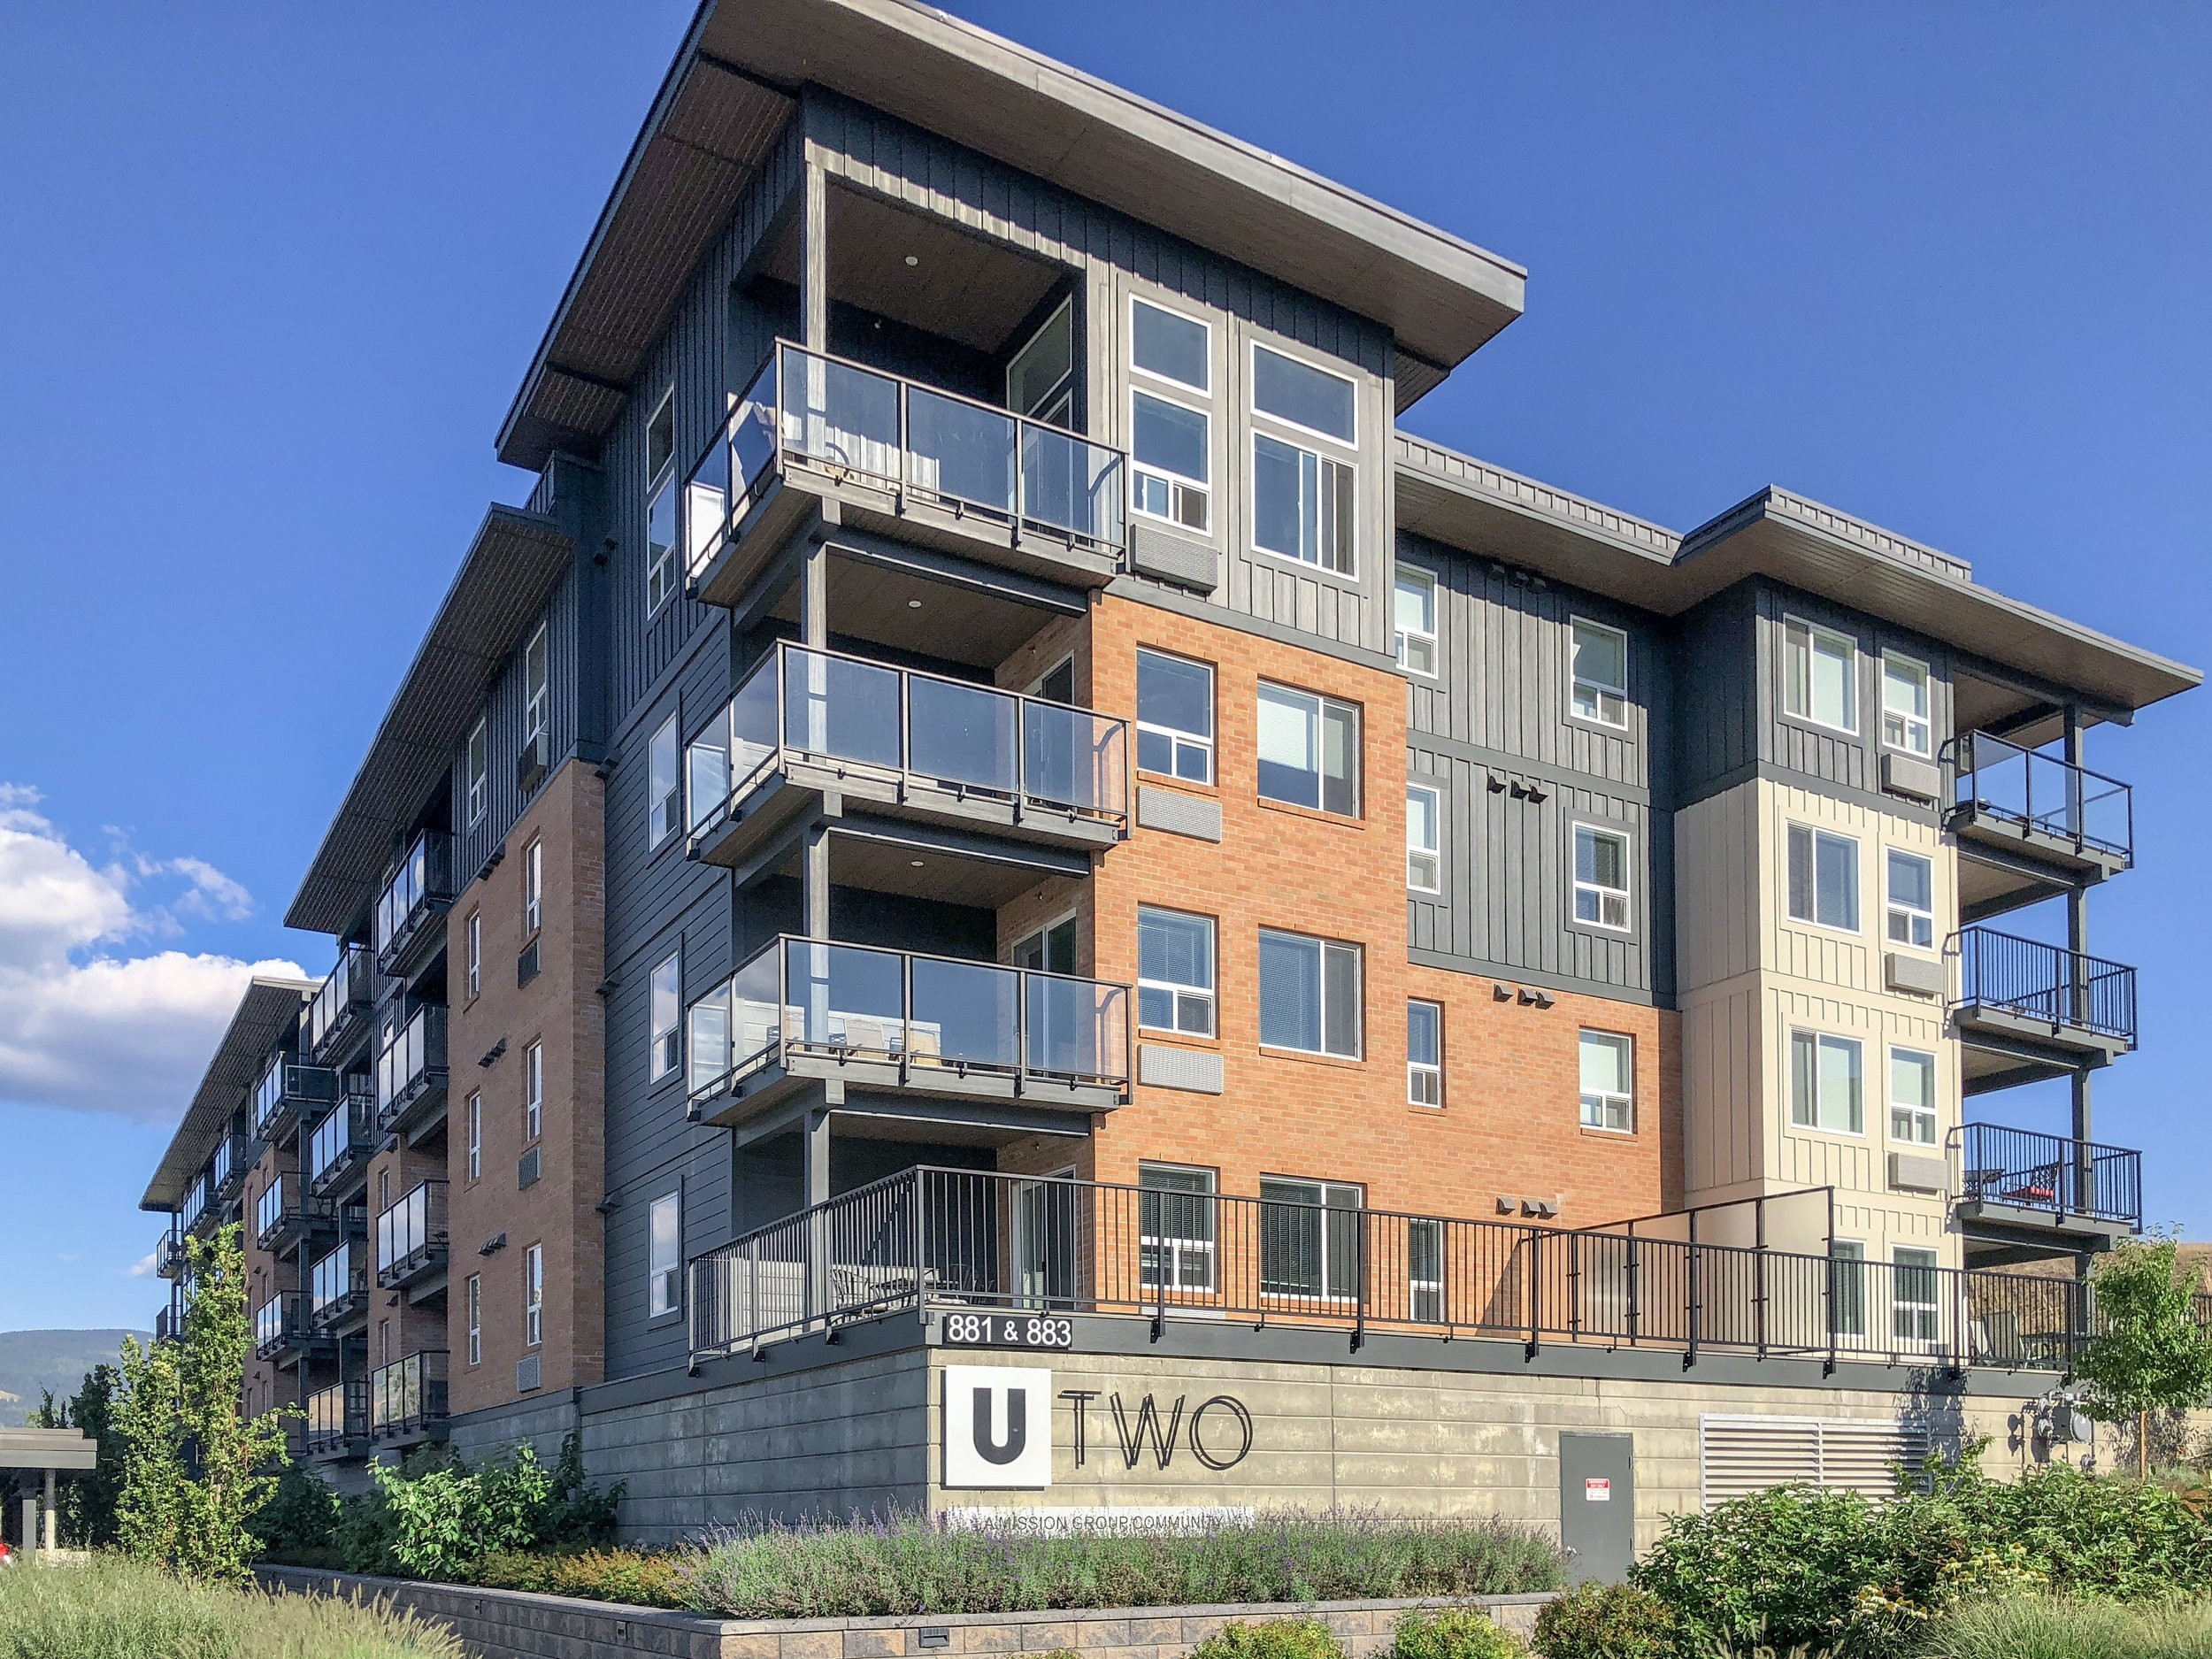 u-two-ubco-kelowna-investment-property.jpg